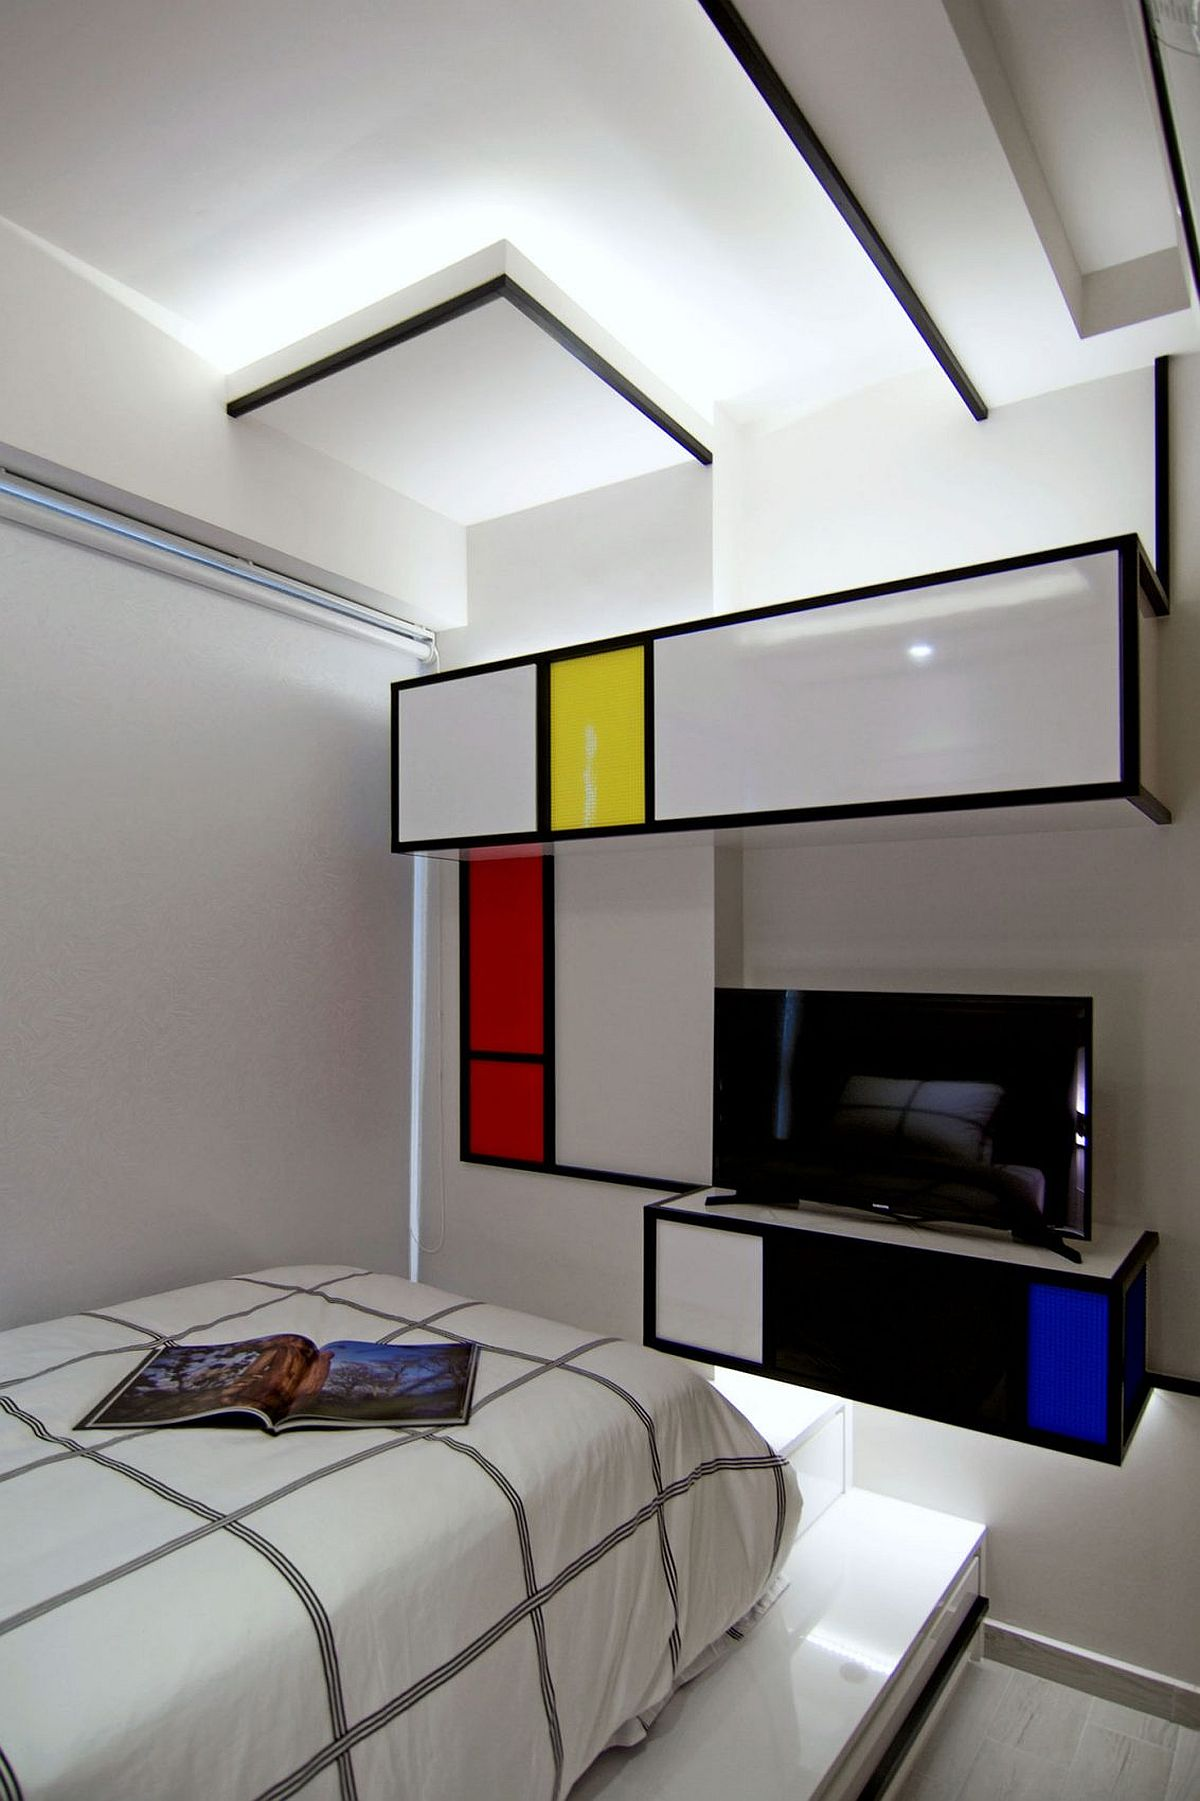 Rejuvenated Singapore Home Inspired By Piet Mondrian And Urban Street Aesthetics